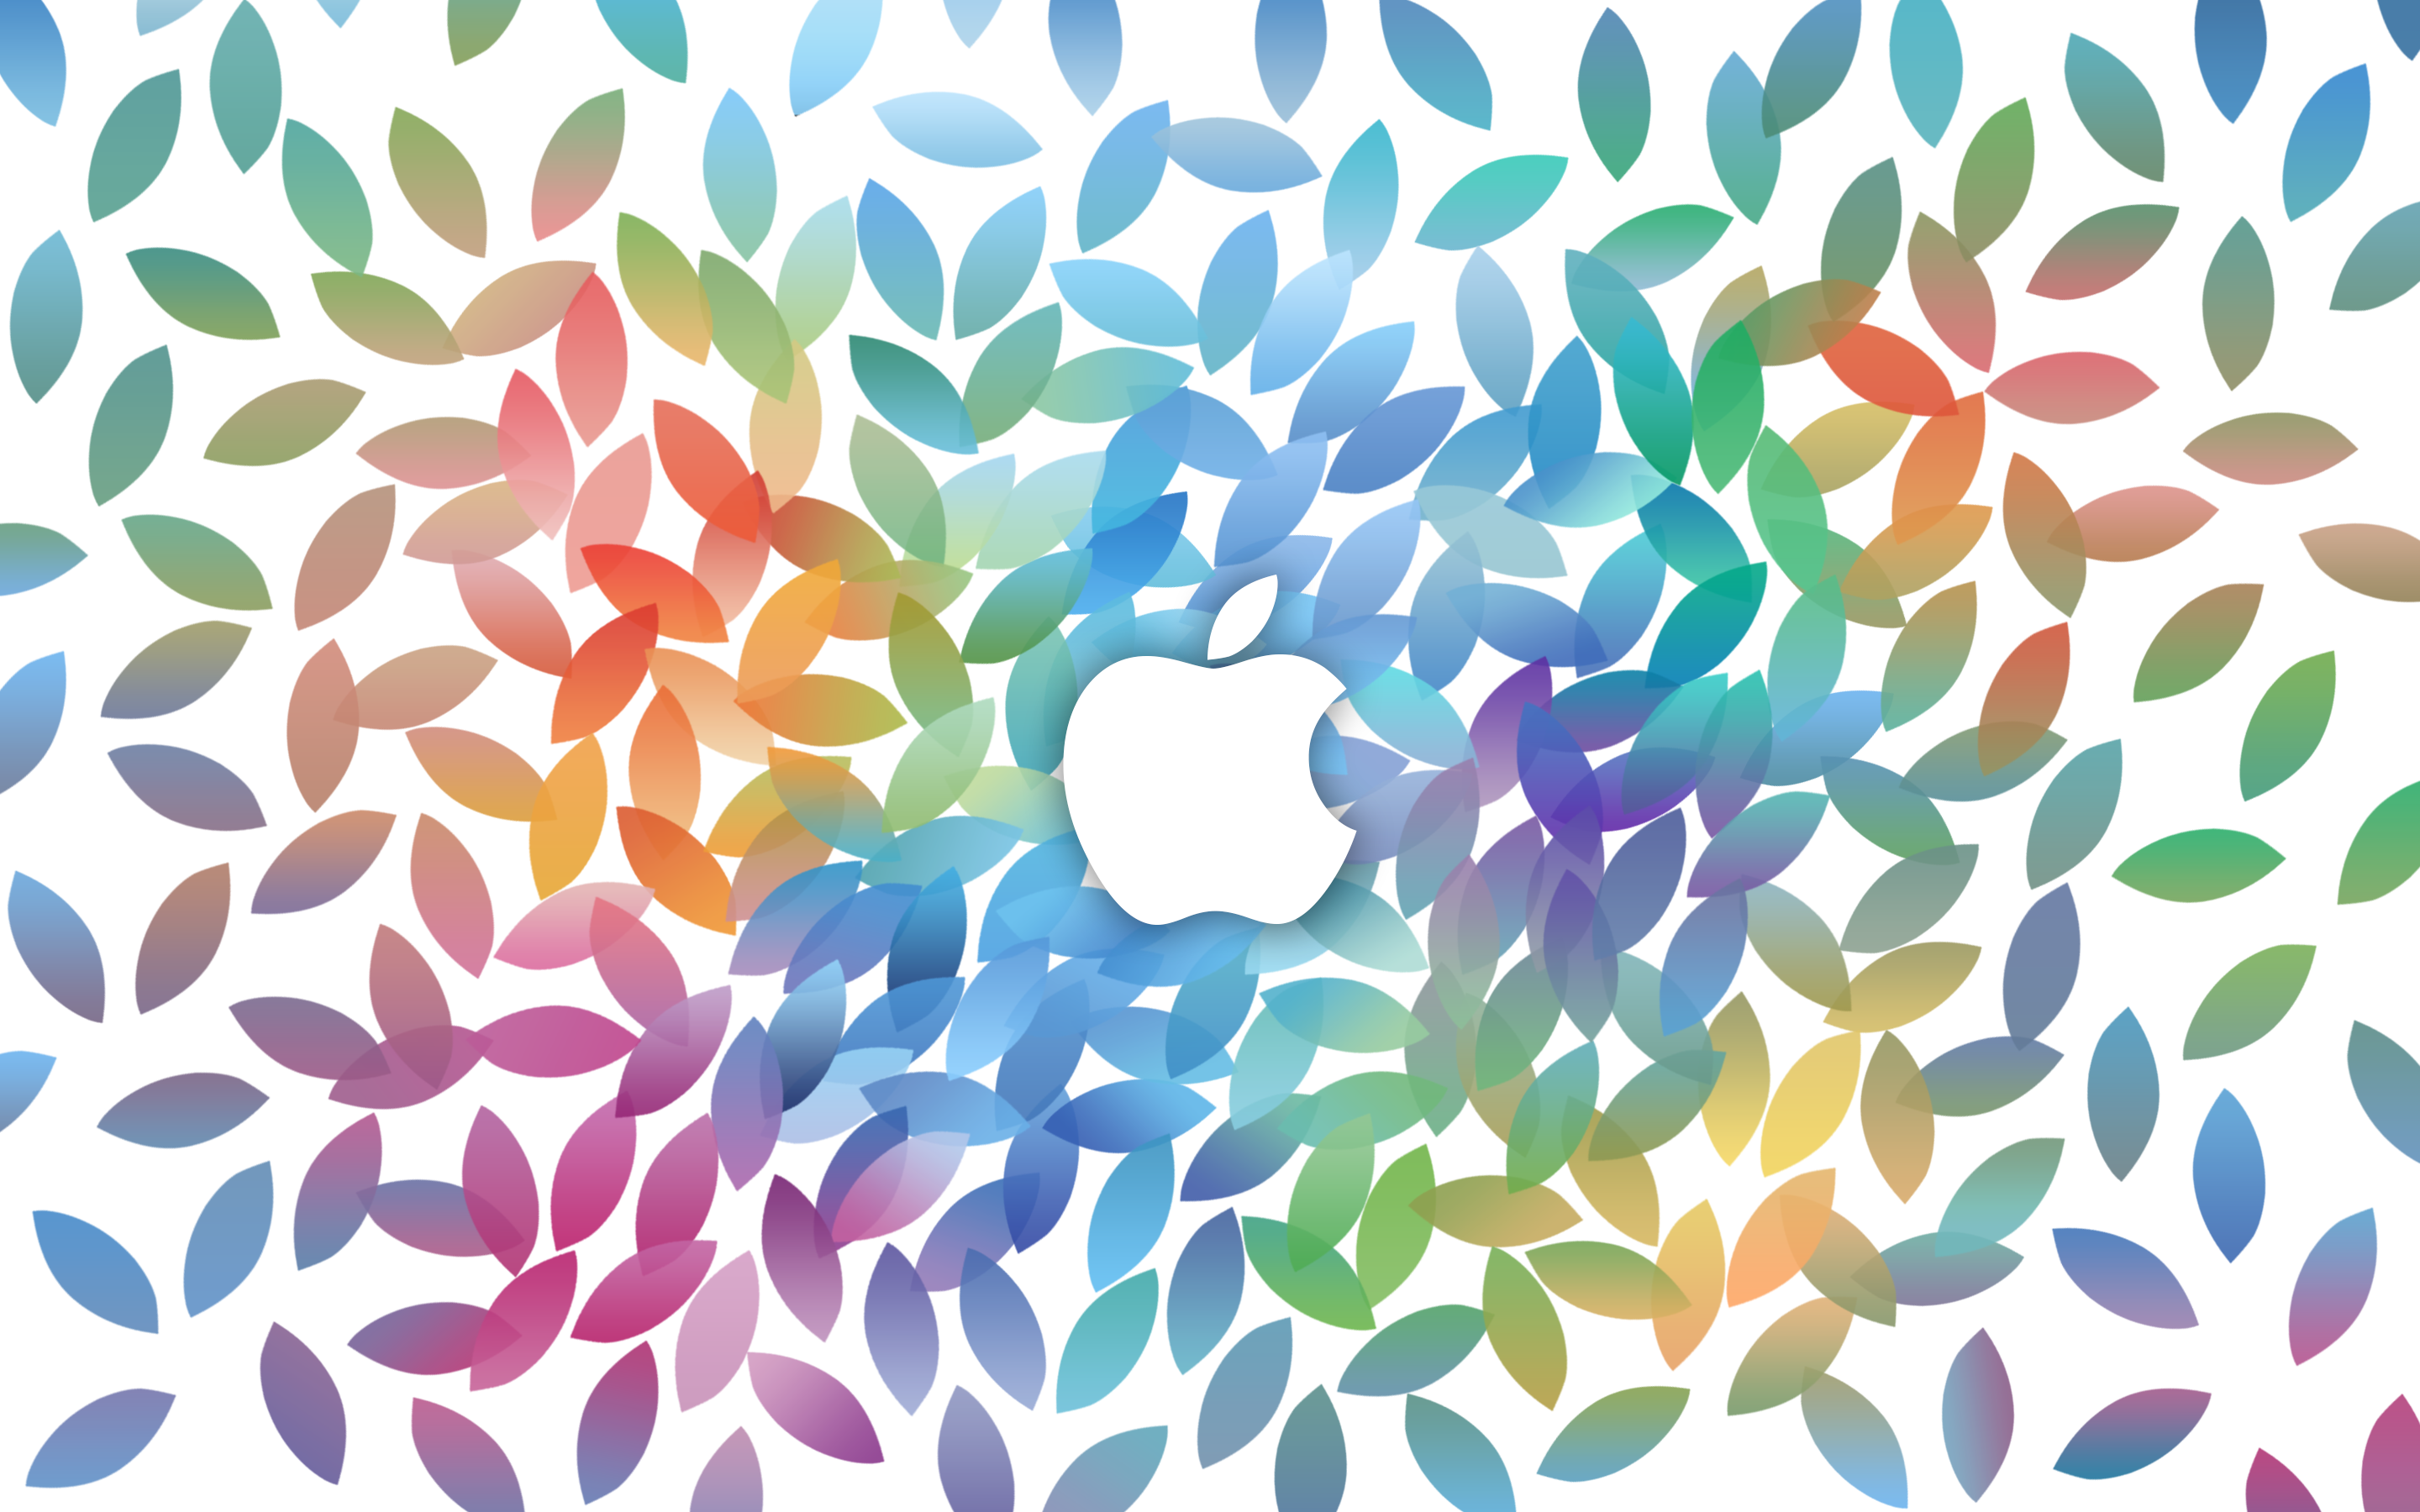 Adorable Apple Wallpaper, 38955748 2880x1800